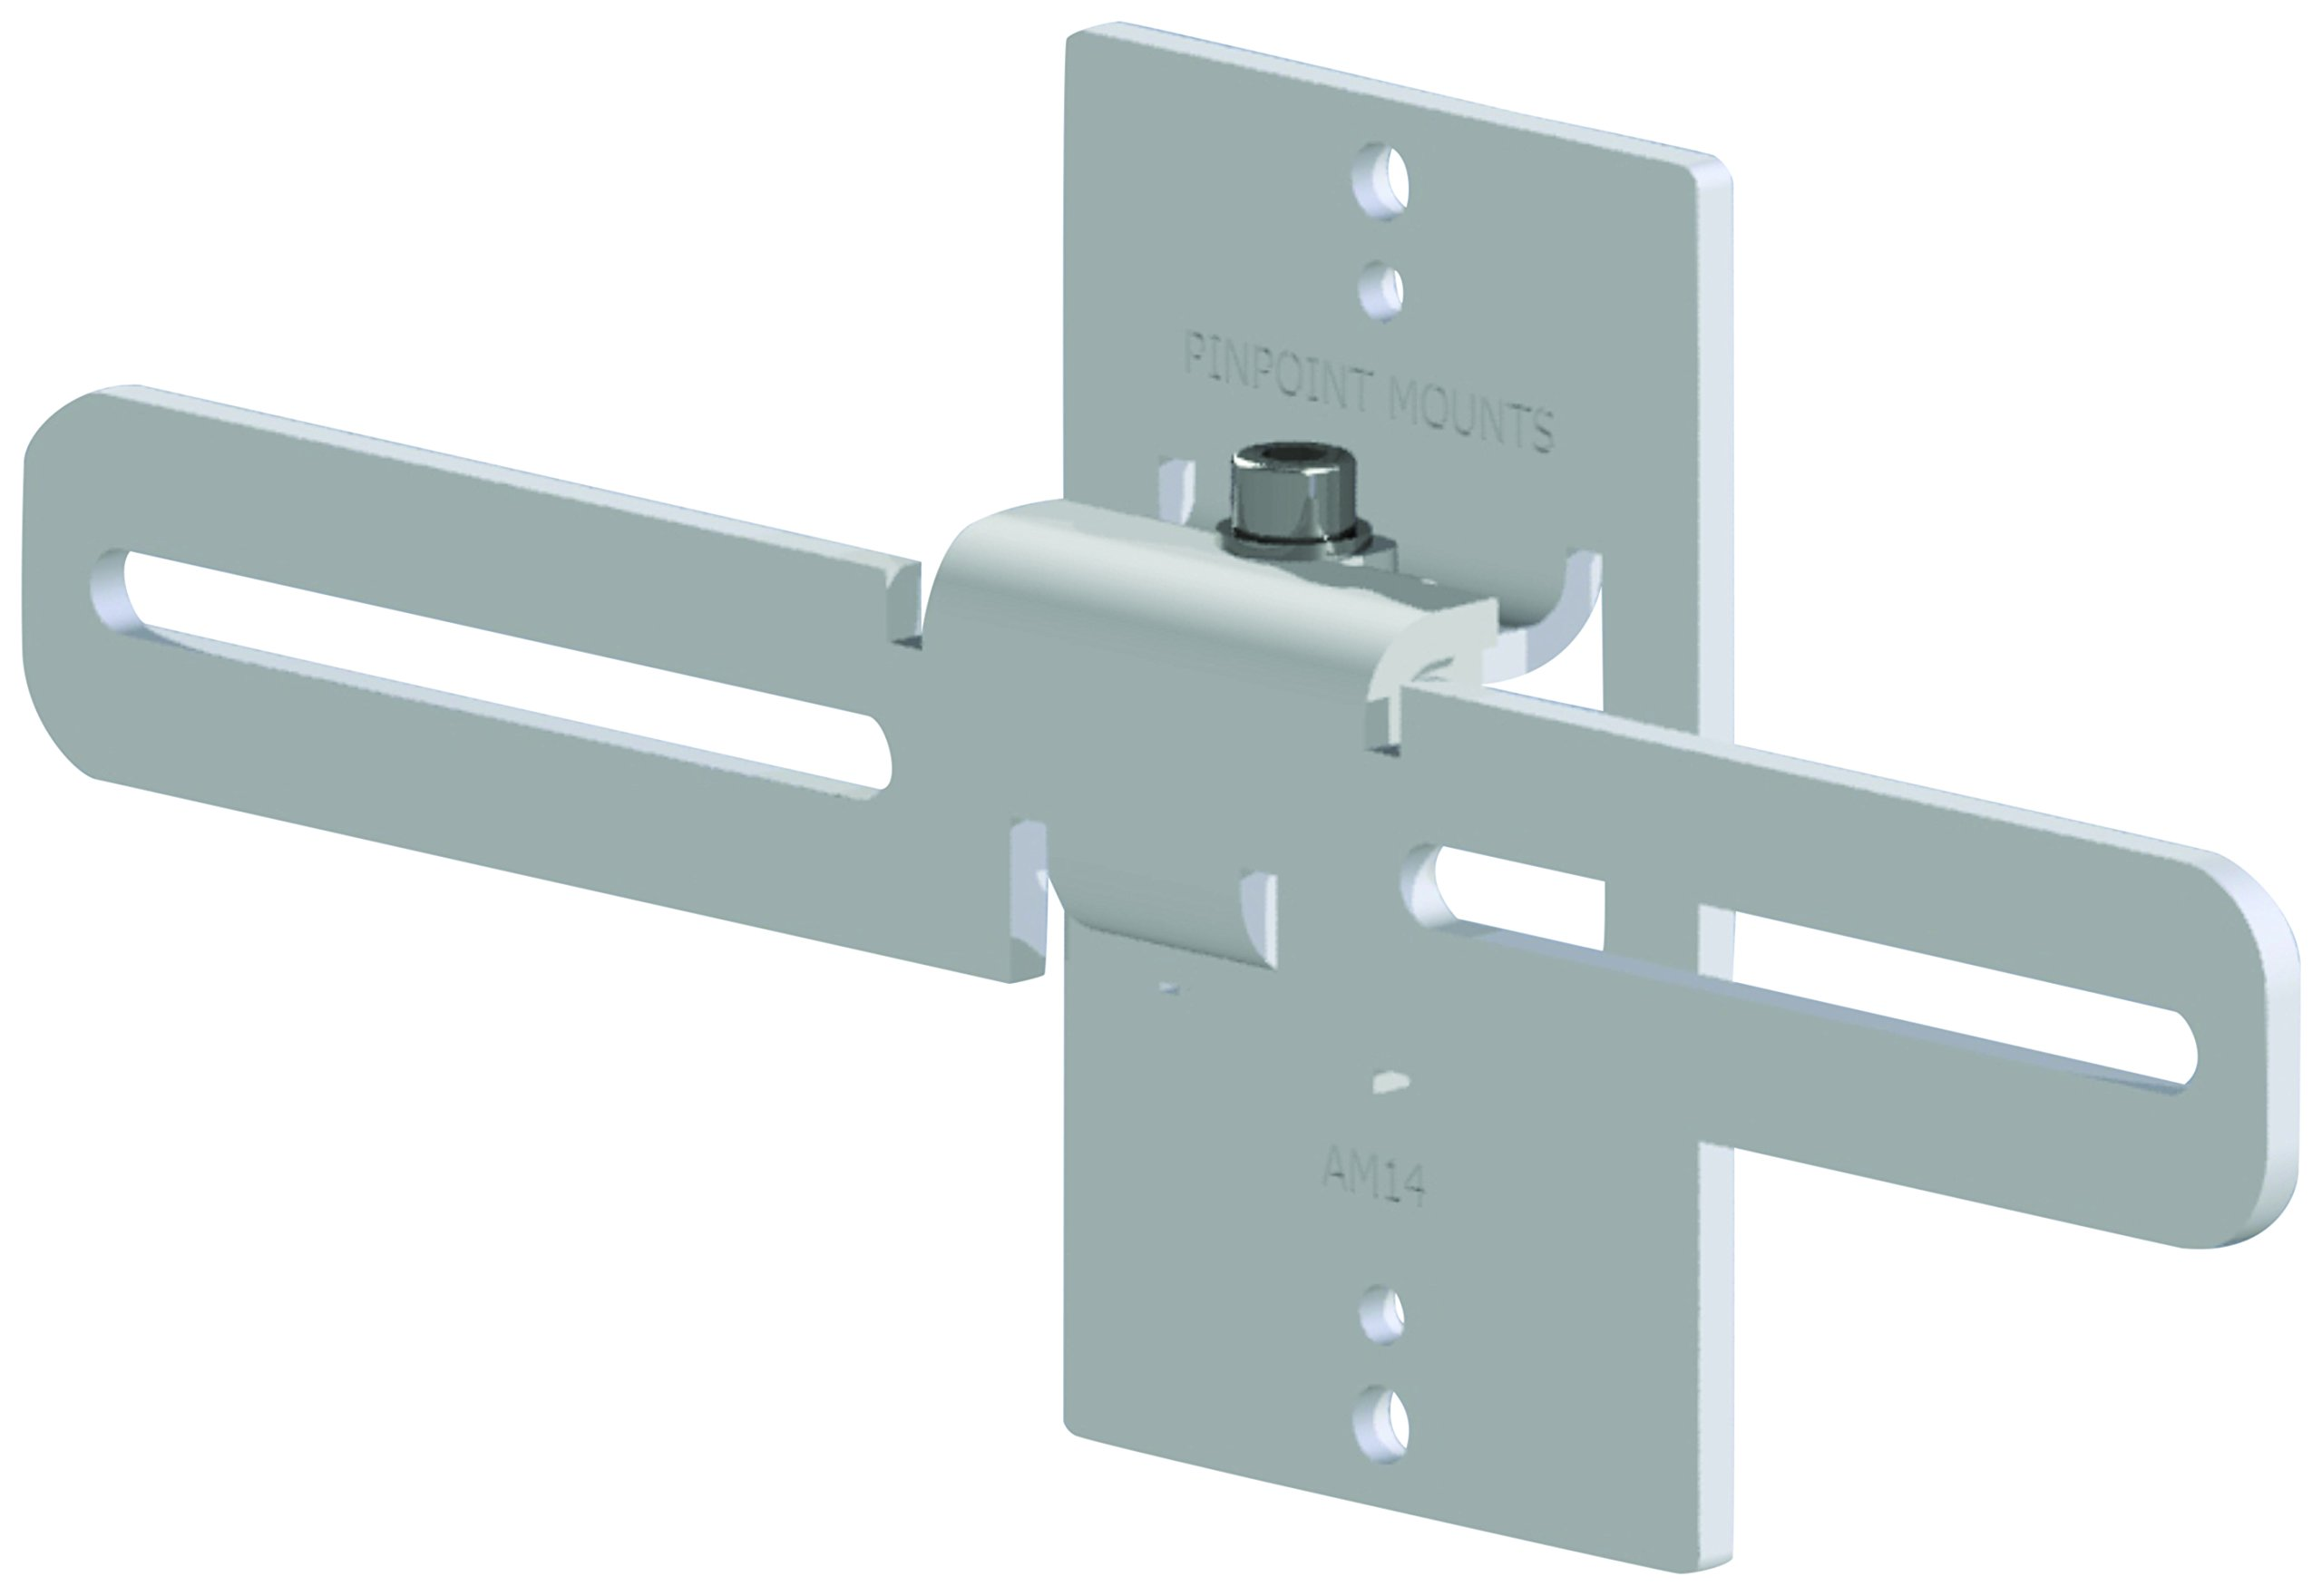 Pinpoint Mounts AM14-WHITE Wall Home Speaker Mount, White by Pinpoint Mounts (Image #1)